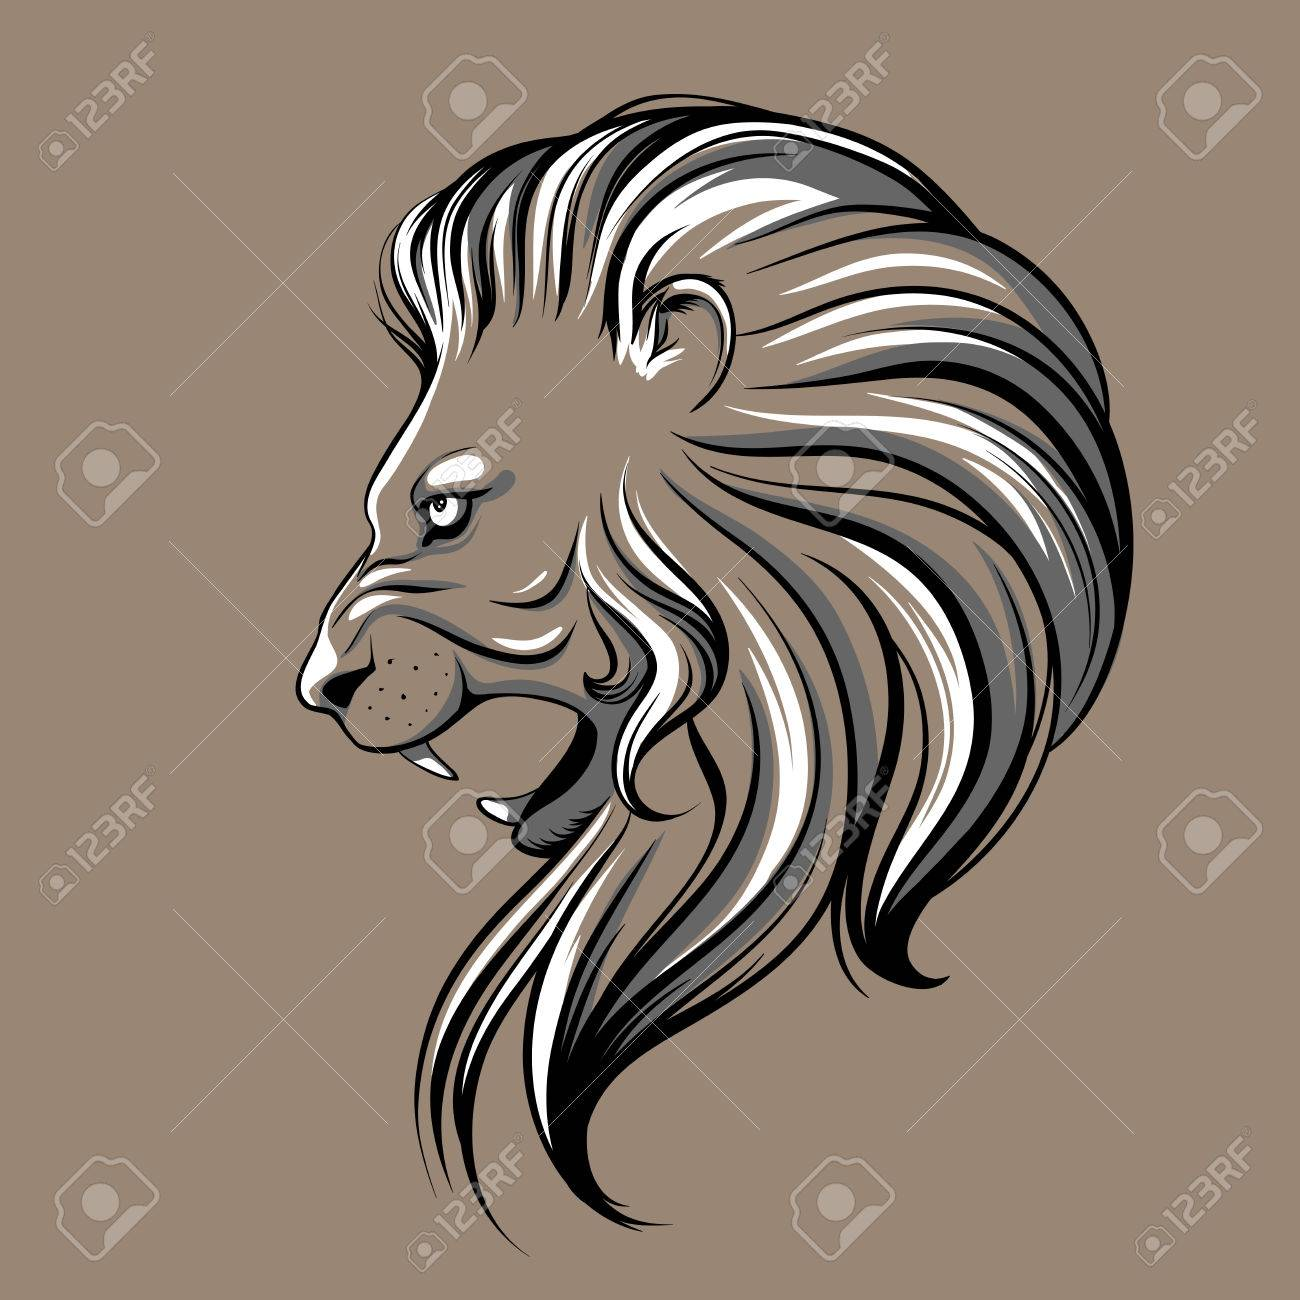 1300x1300 Lion Head Illustration Royalty Free Cliparts, Vectors, And Stock